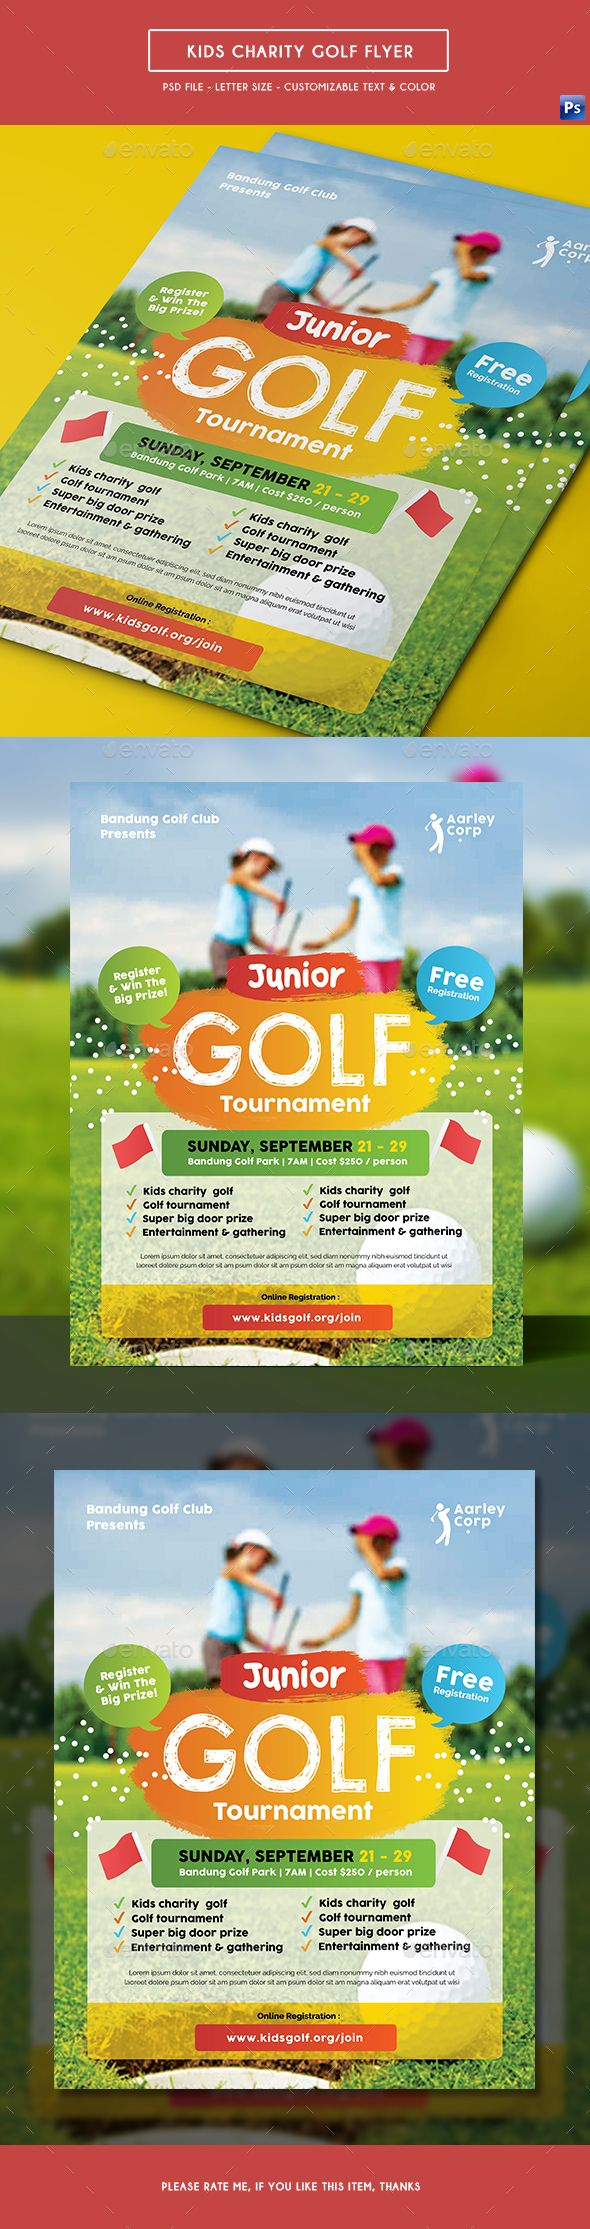 Kids Charity Golf #Flyer - Sports Events Download here: https://graphicriver.net/item/kids-charity-golf-flyer/19610897?ref=alena994